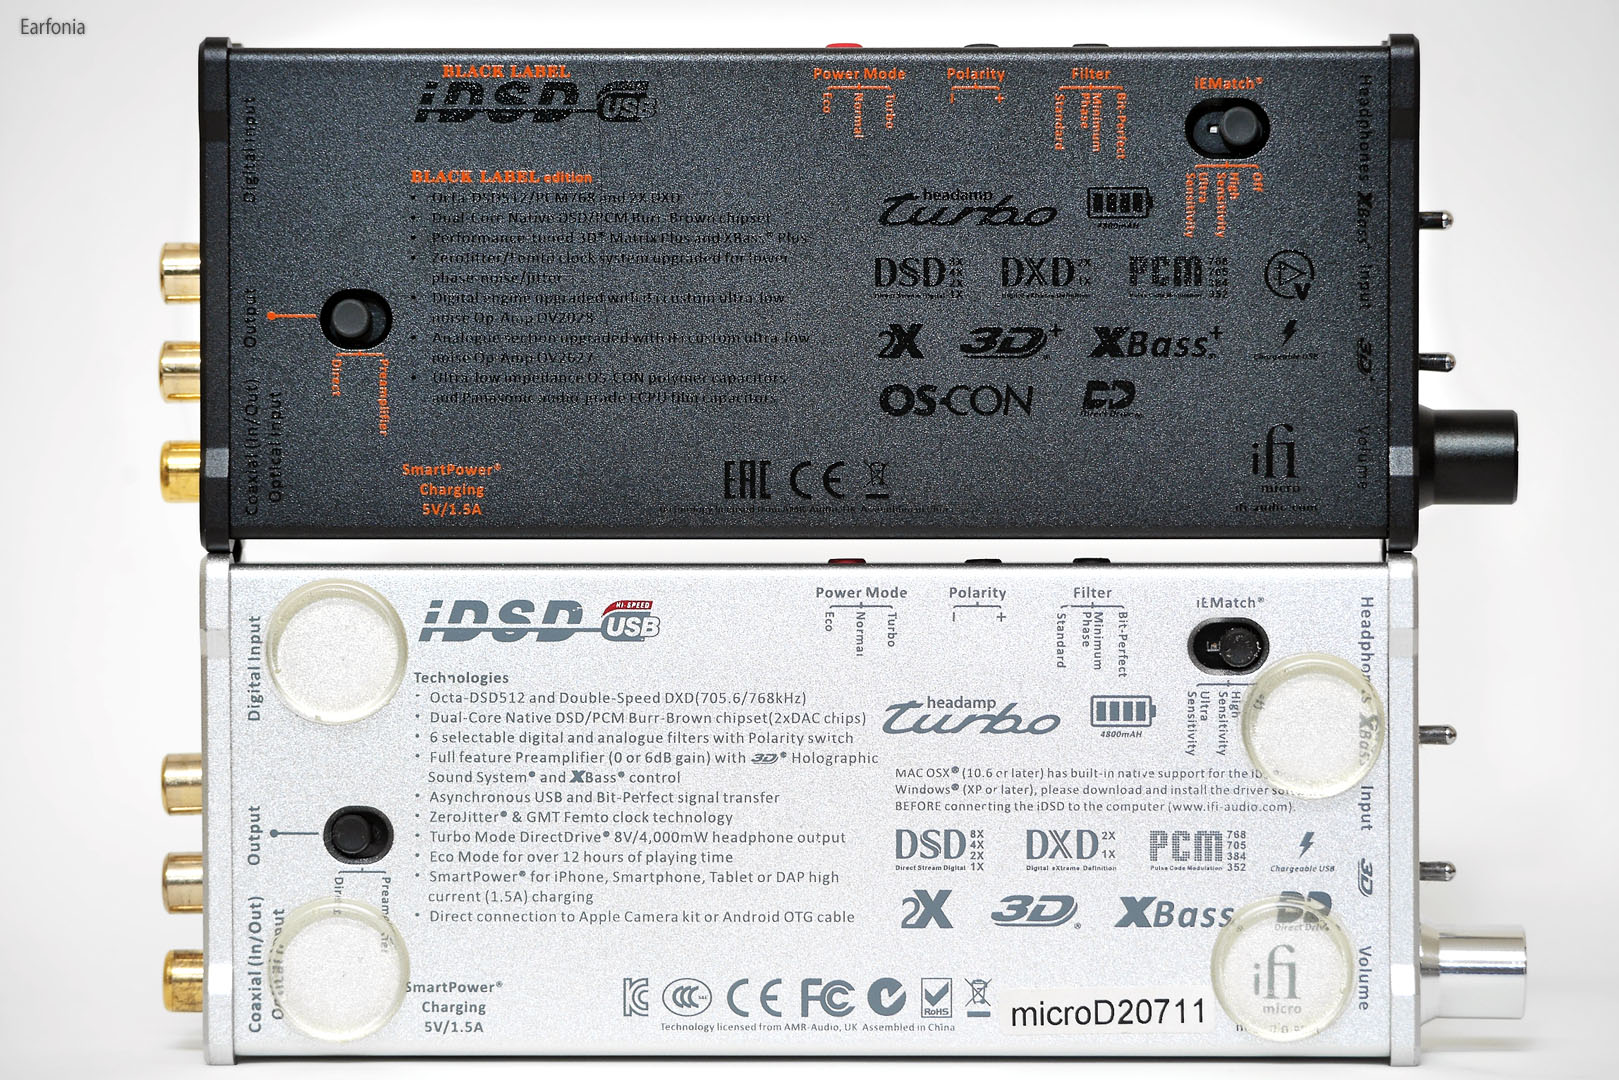 Ifi Micro Idsd Black Label In Depth Review Headphone Reviews And Log On Otg Usb Lo 28 Gold Some Of The Improvements Version Are Electronic Components Power Sections Clock System Other Improvement Both